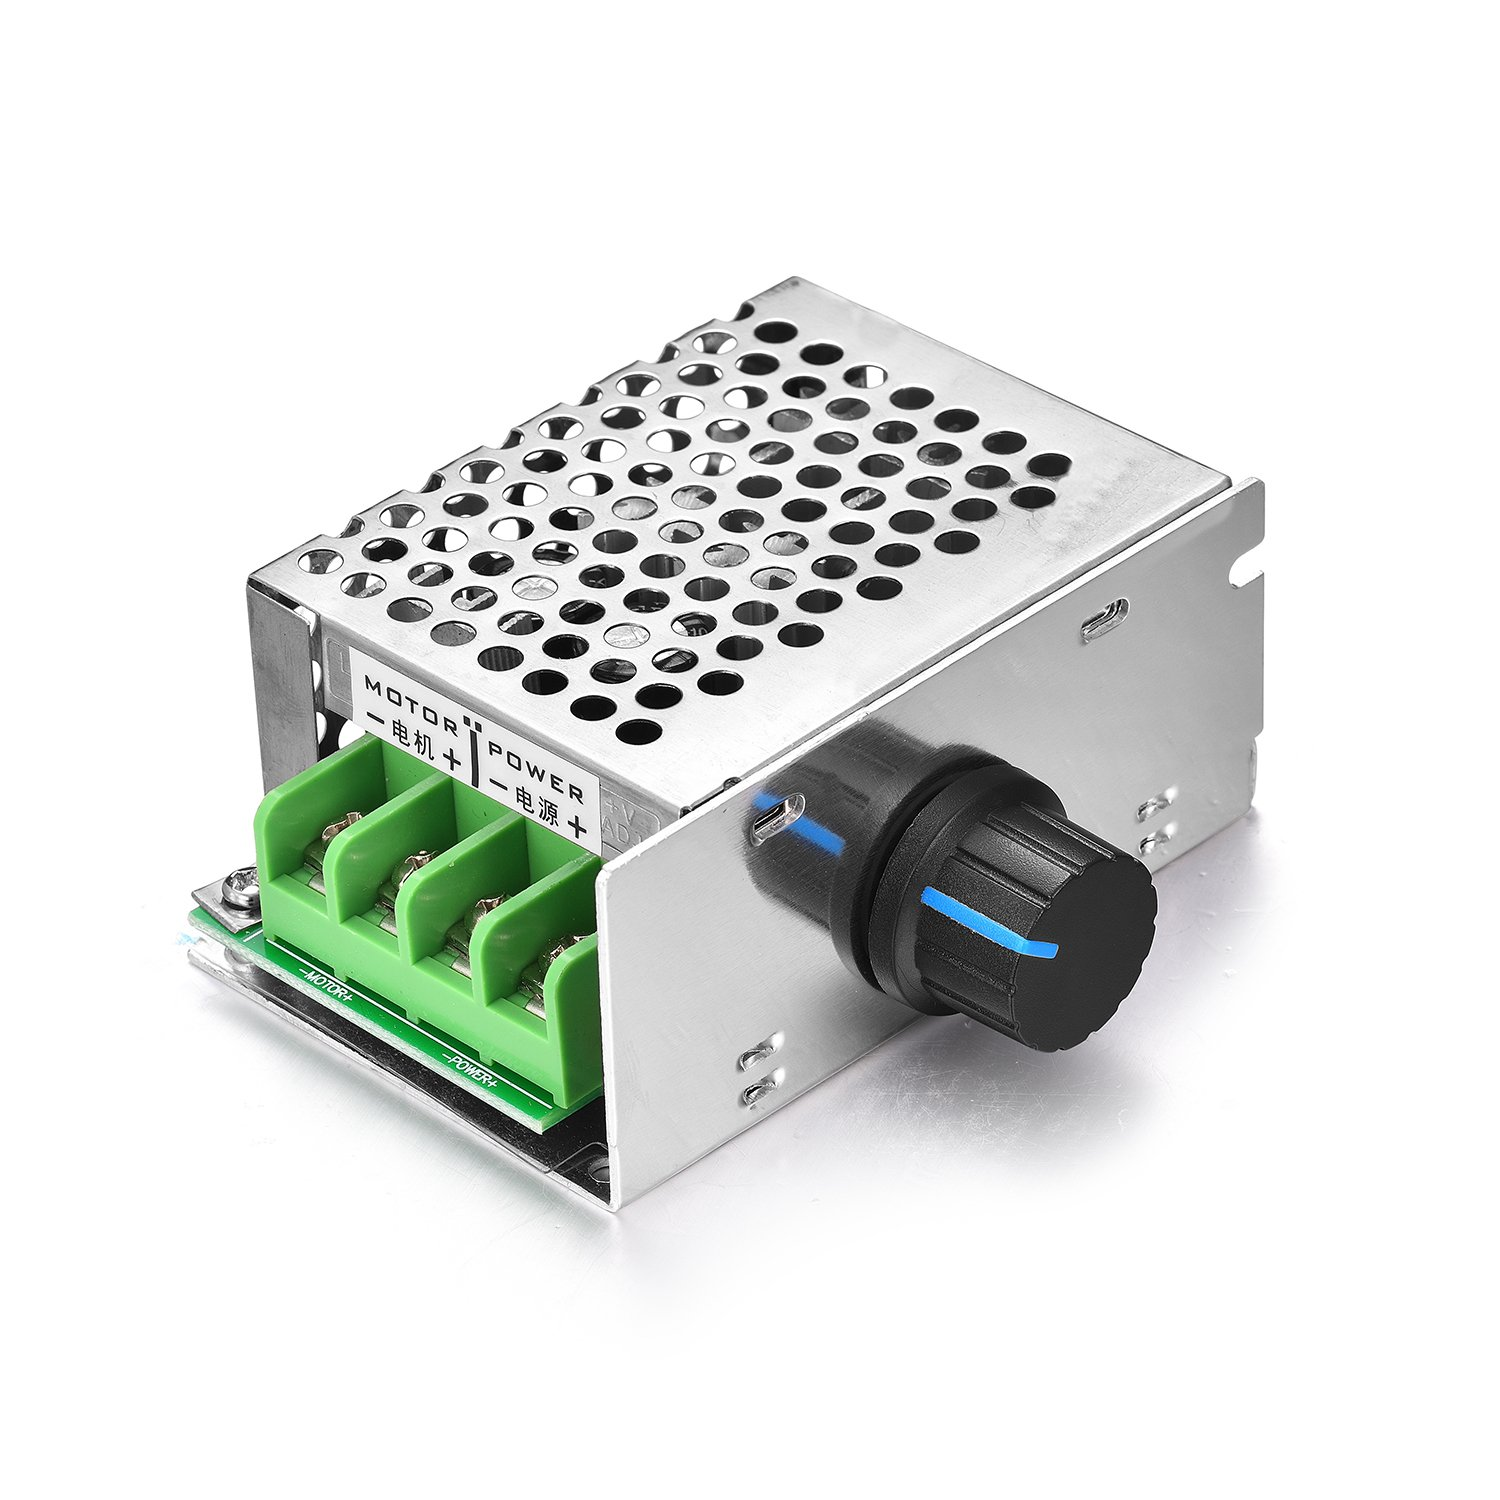 Aweking DC10-60V 12V 24V 36V 48V 10A Motor Speed Controller,PWM,Adjustable Driver,Max240W,With Switch potentiometer,10A Fues Overloading Protection,5%-100% Speed Controlling